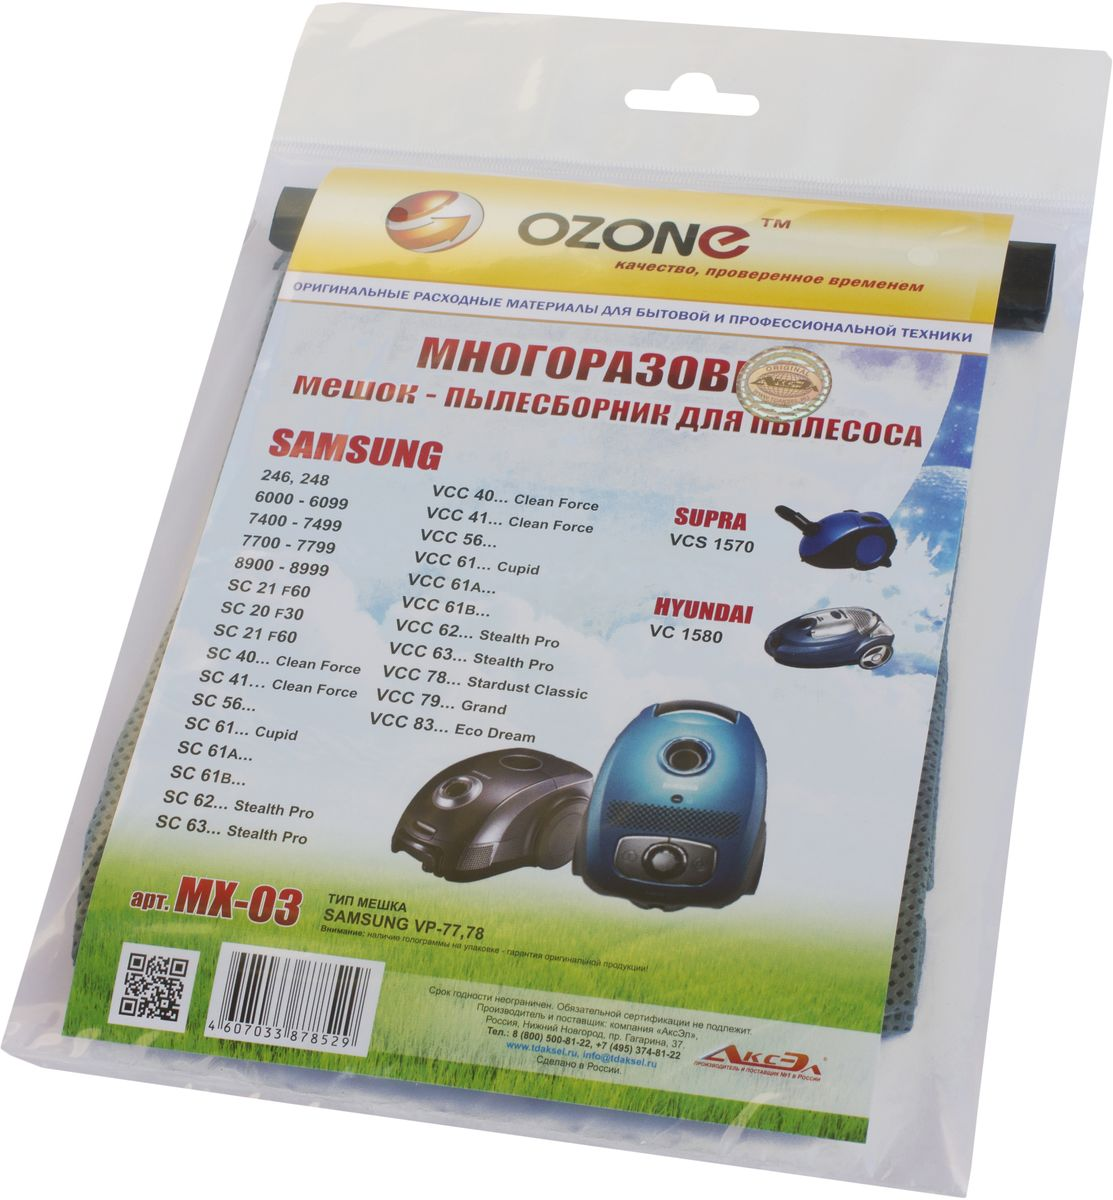 Ozone MX-03 пылесборник для пылесосов Samsung 12vdc 5000mg h efficient water treatment ozone generator ozone disinfection kit